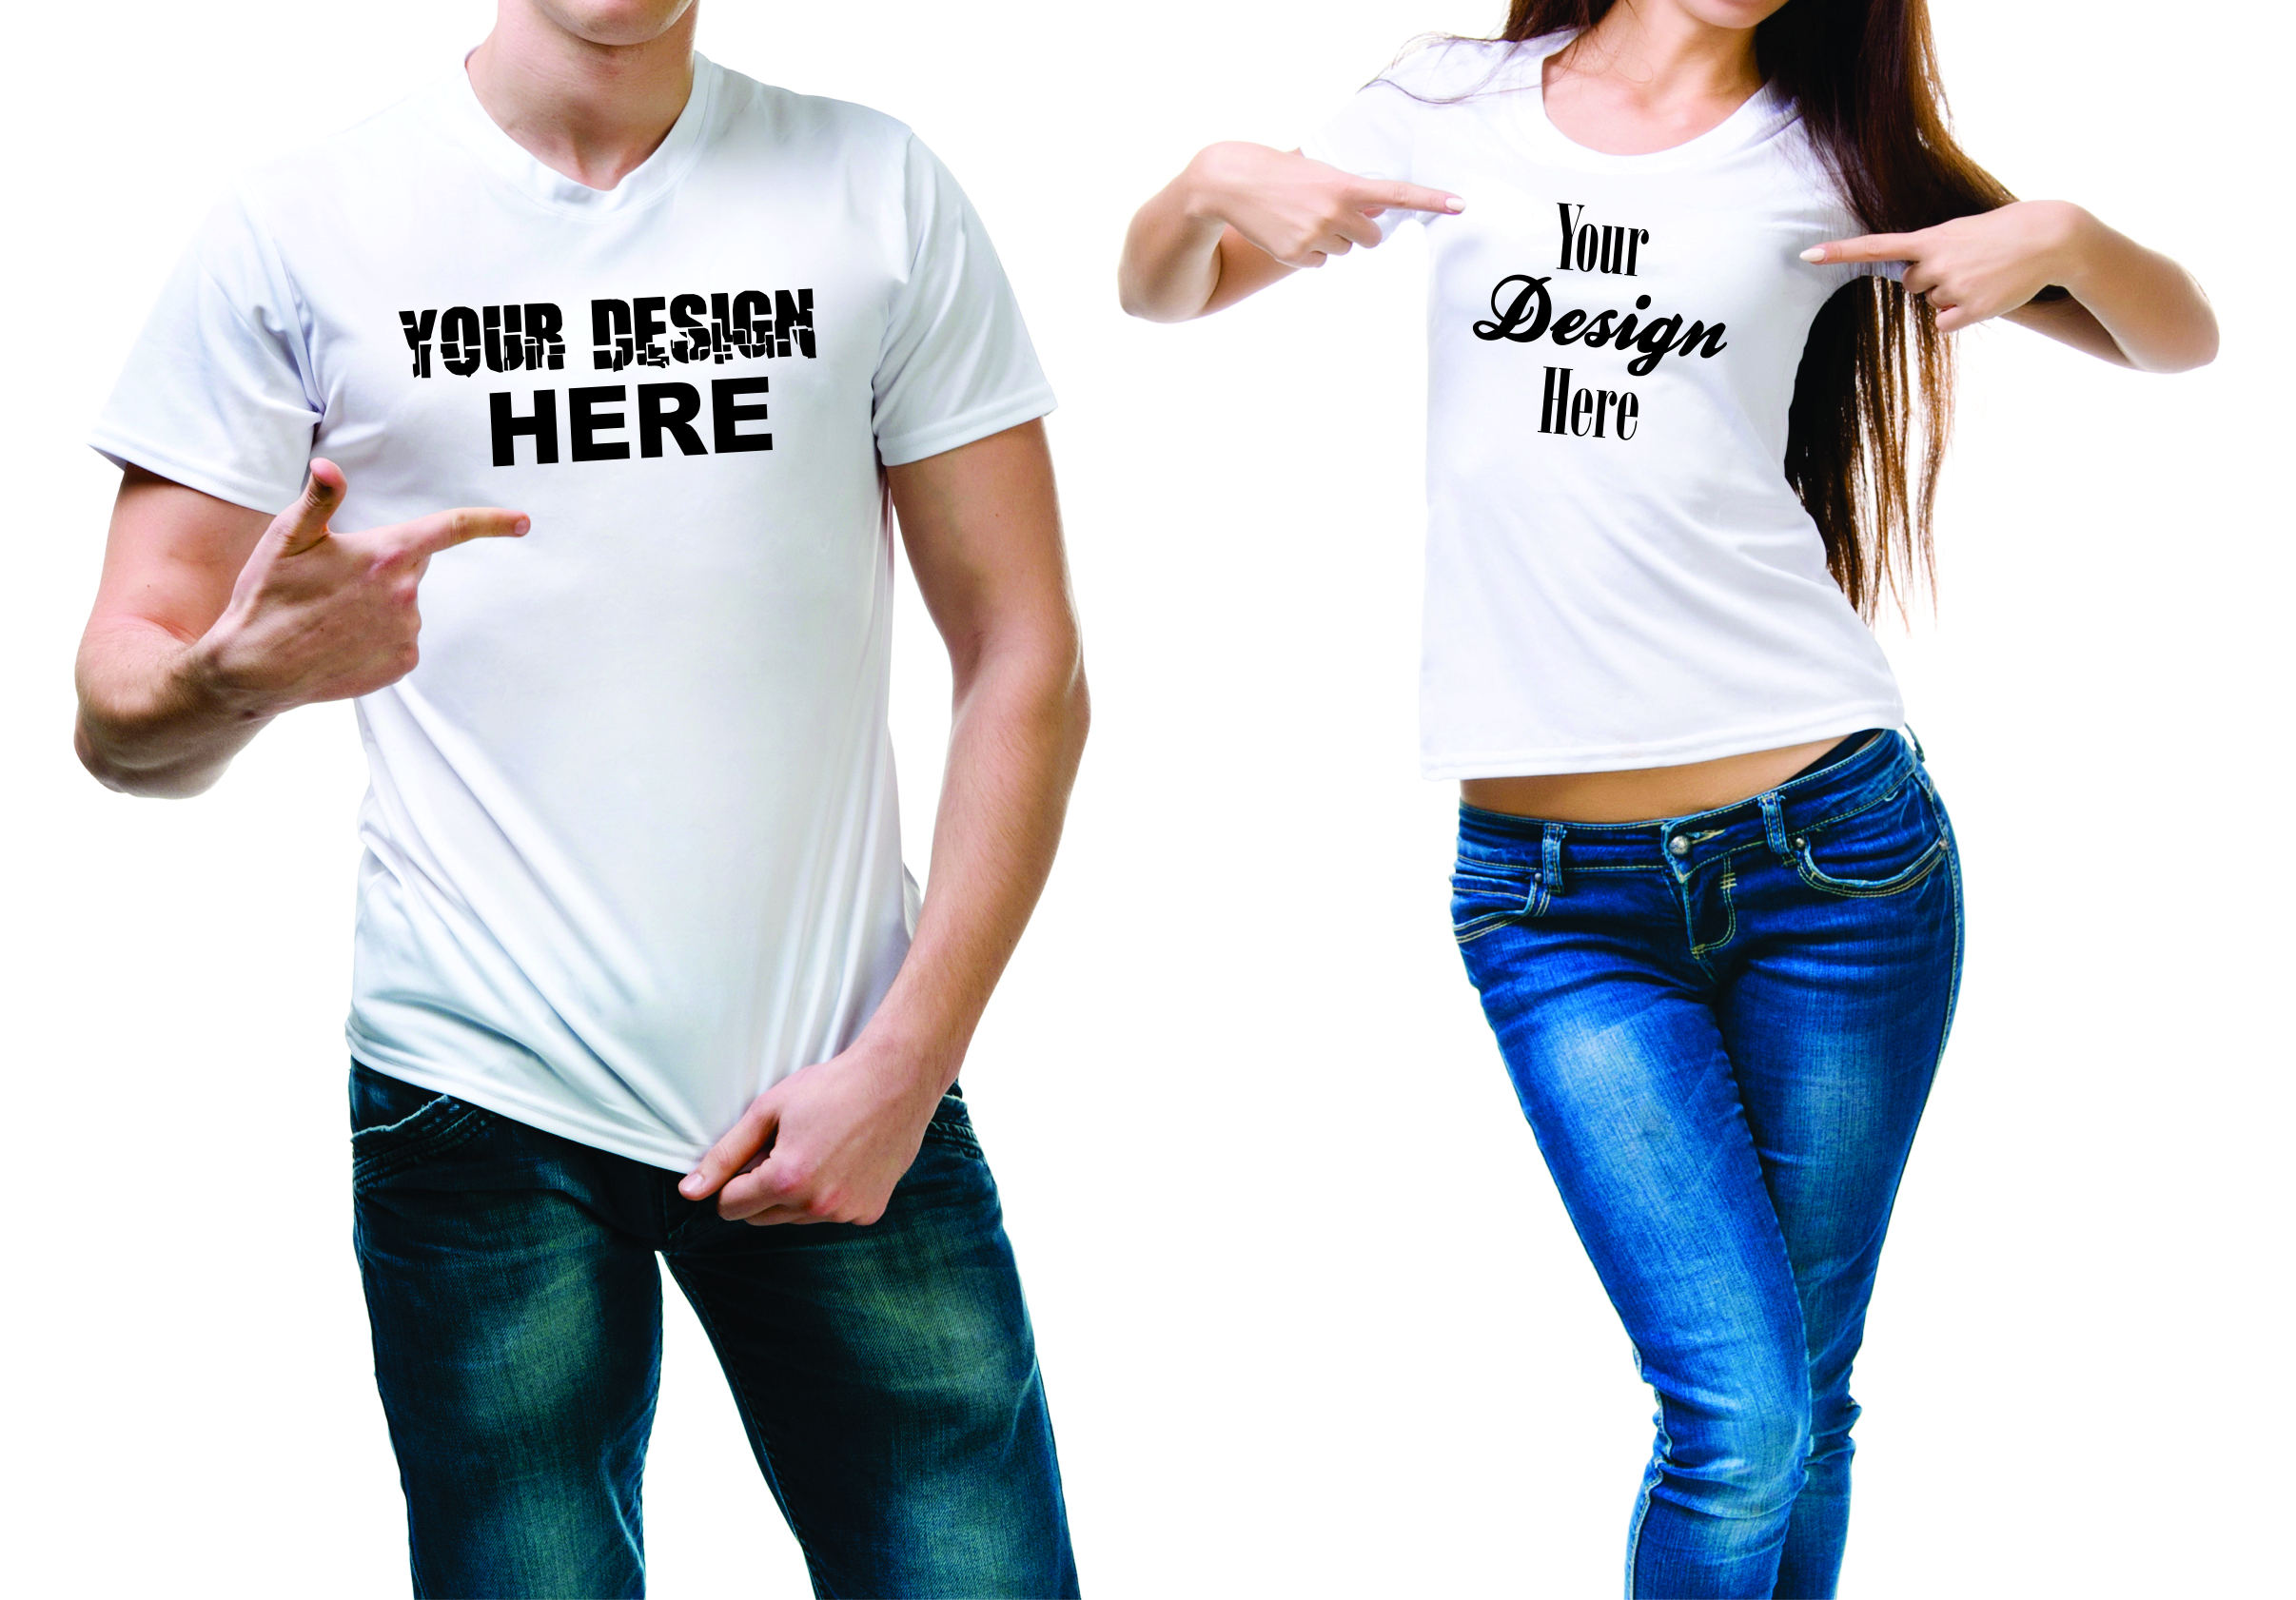 Design t shirts hoodies - T Shirts And Hoodies Are A Cheap And Easy Option When You Want Something Customized For Your Sports Team Office Team Wedding Party Or Even Family Reunion